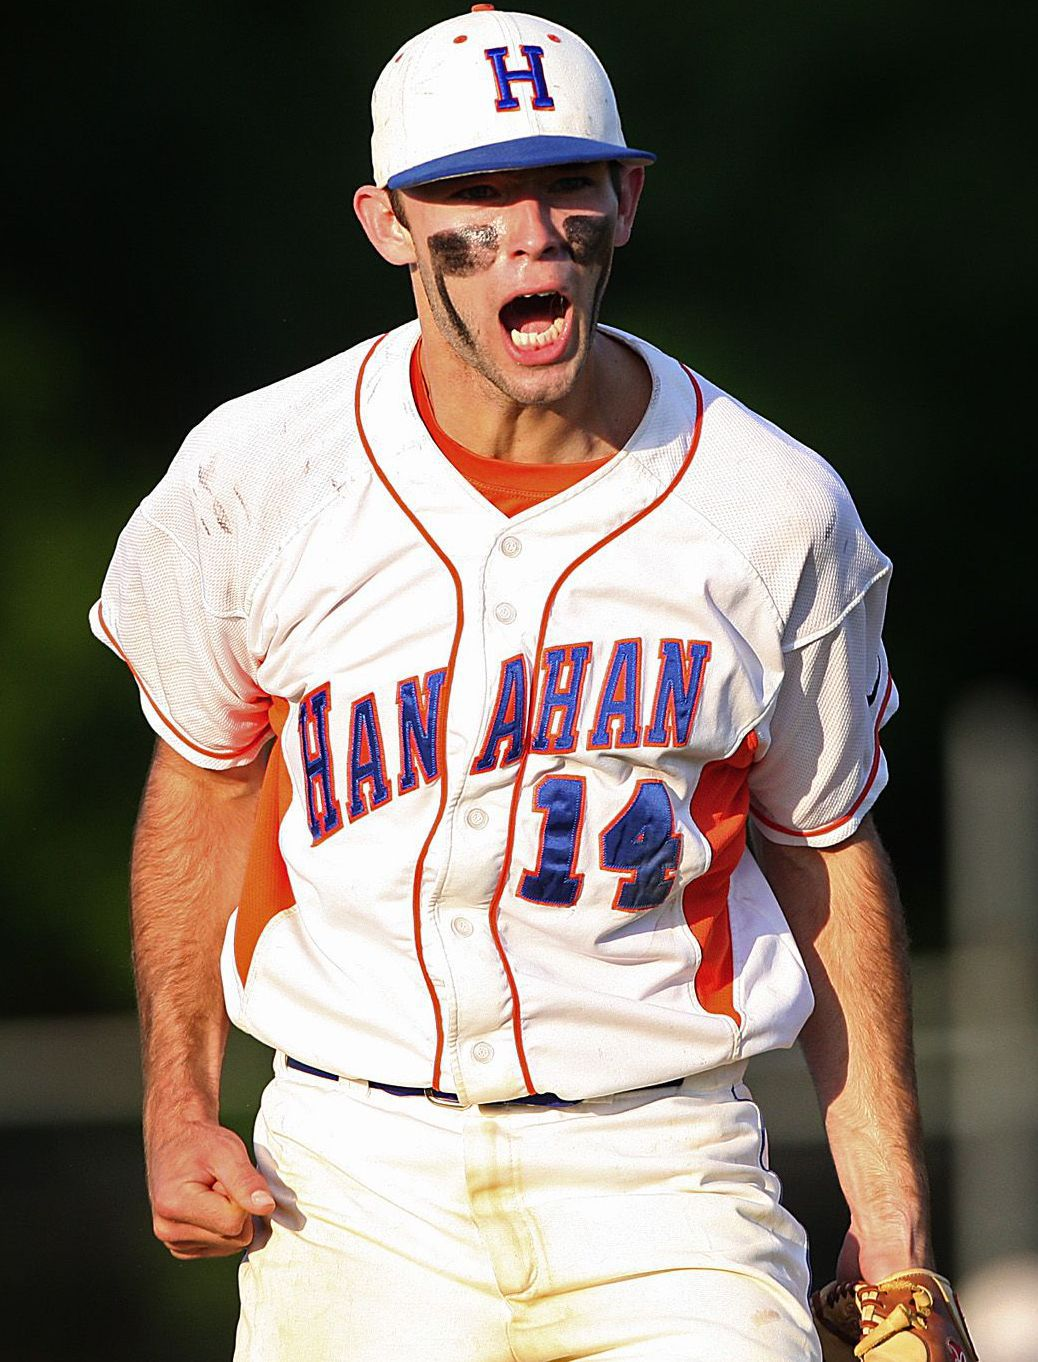 Hanahan High School beats Bishop England twice to advance to state baseball title series